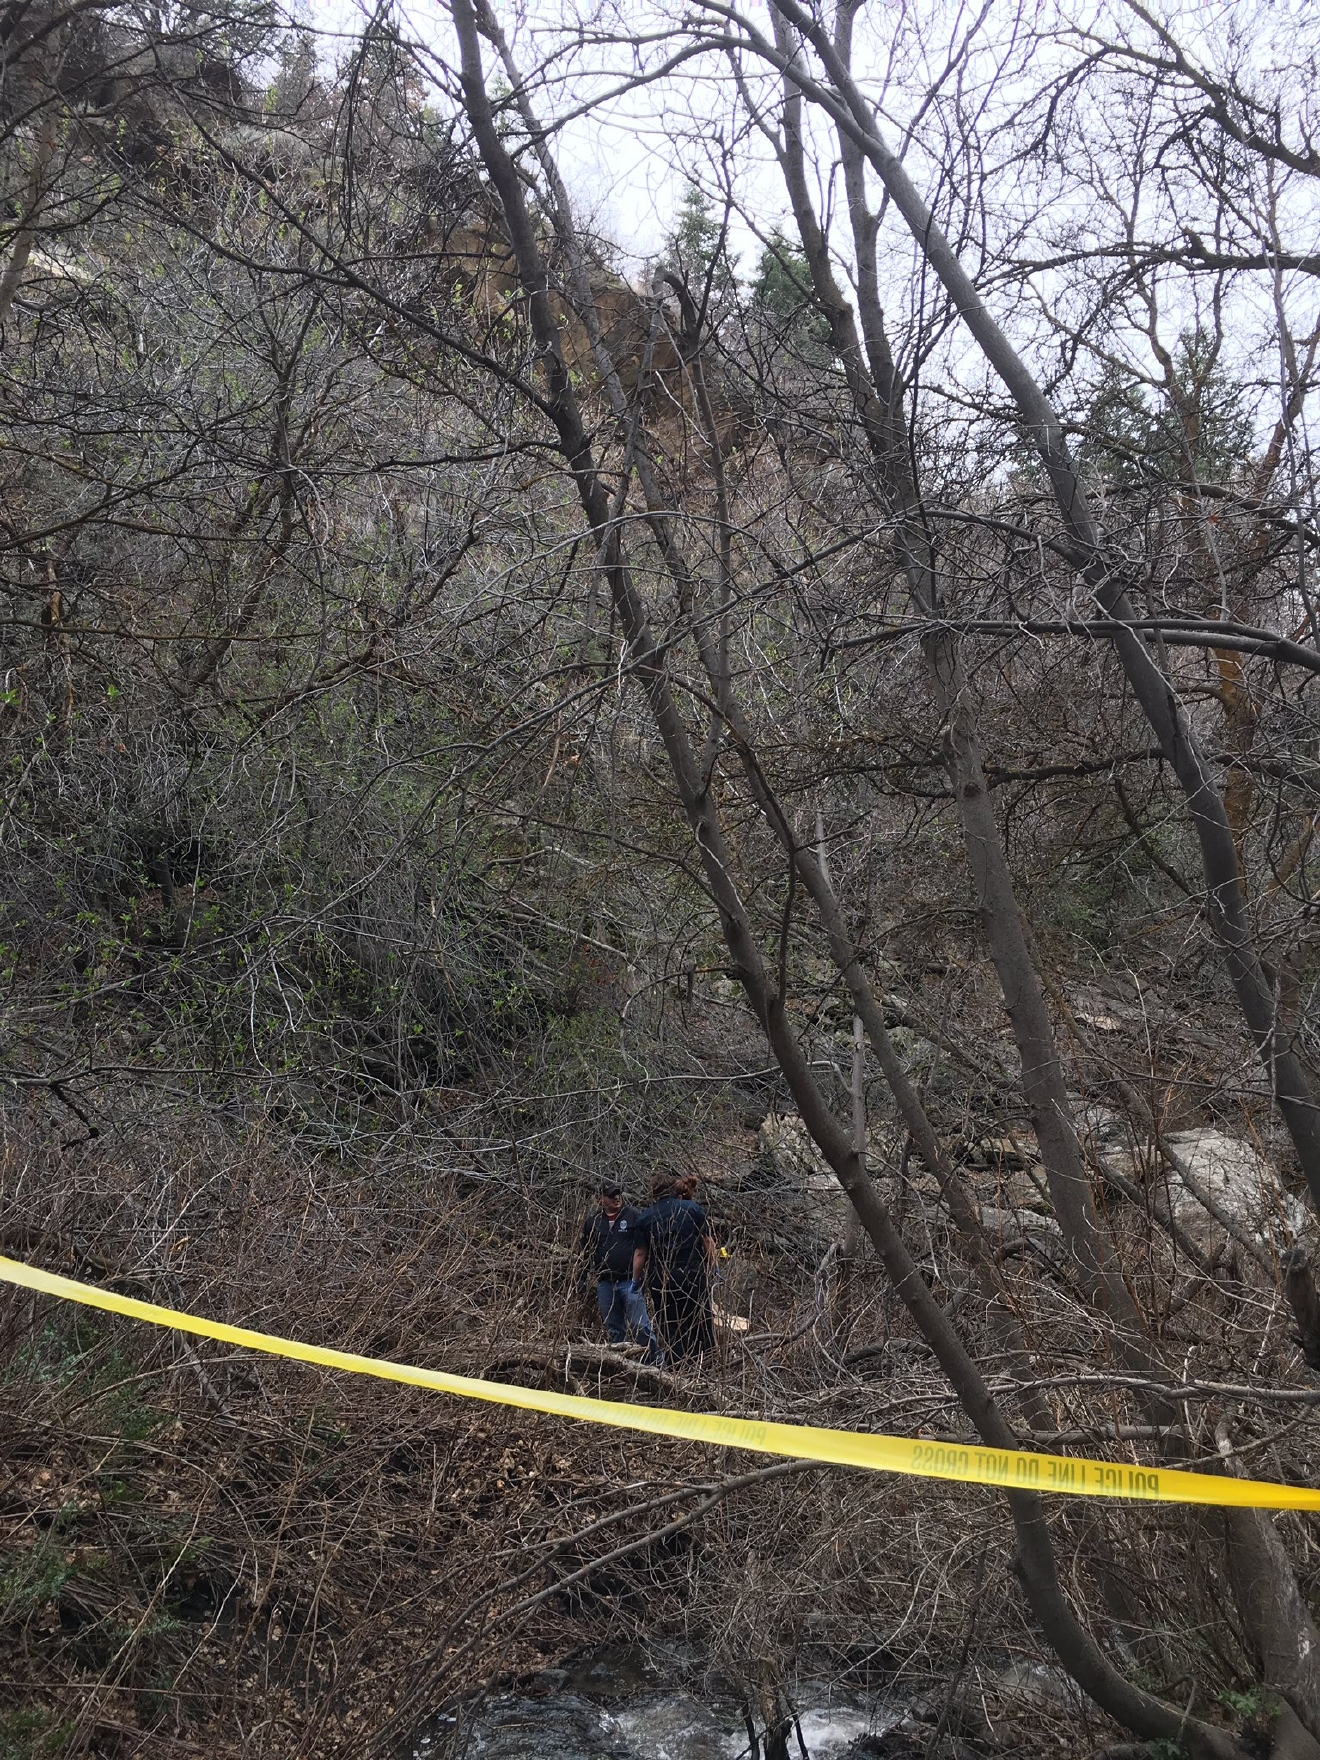 Human remains found in Neffs Canyon. (Photo: UPD)